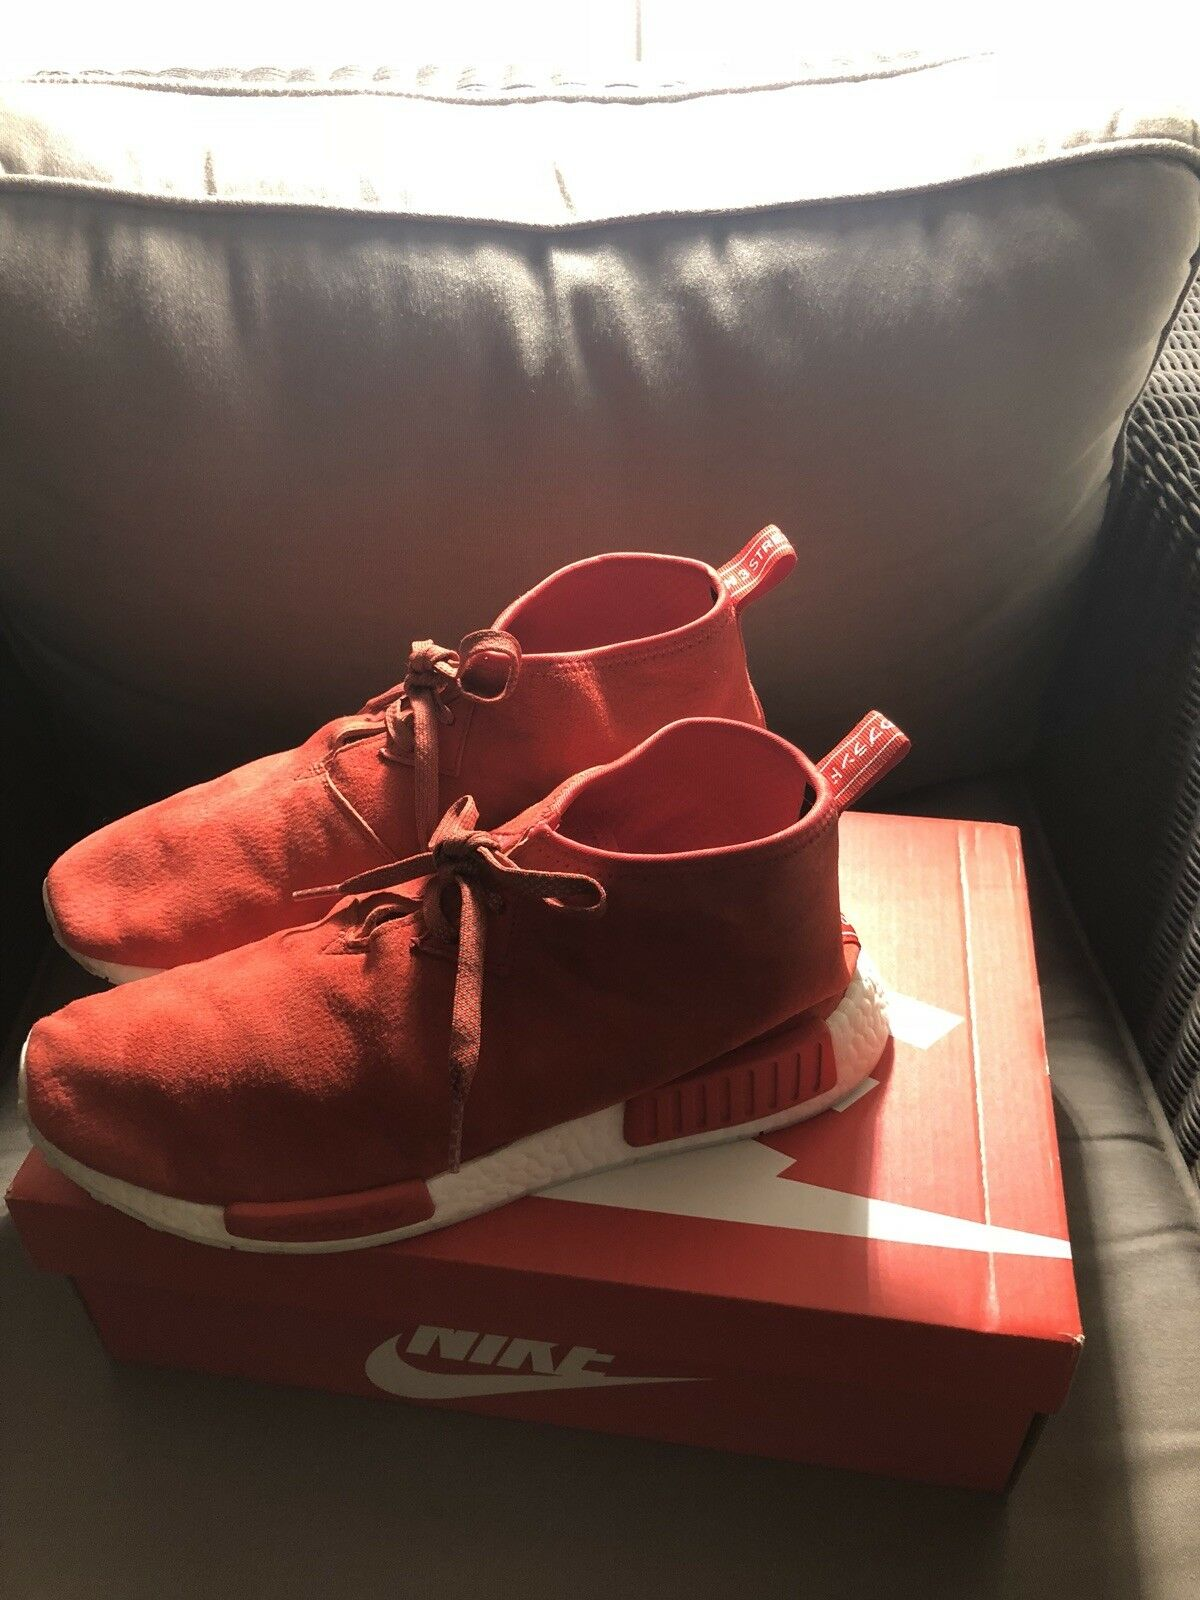 Adidas NMD Nomad C1 Red Chukka Size 10.5  Boost Suede S79147